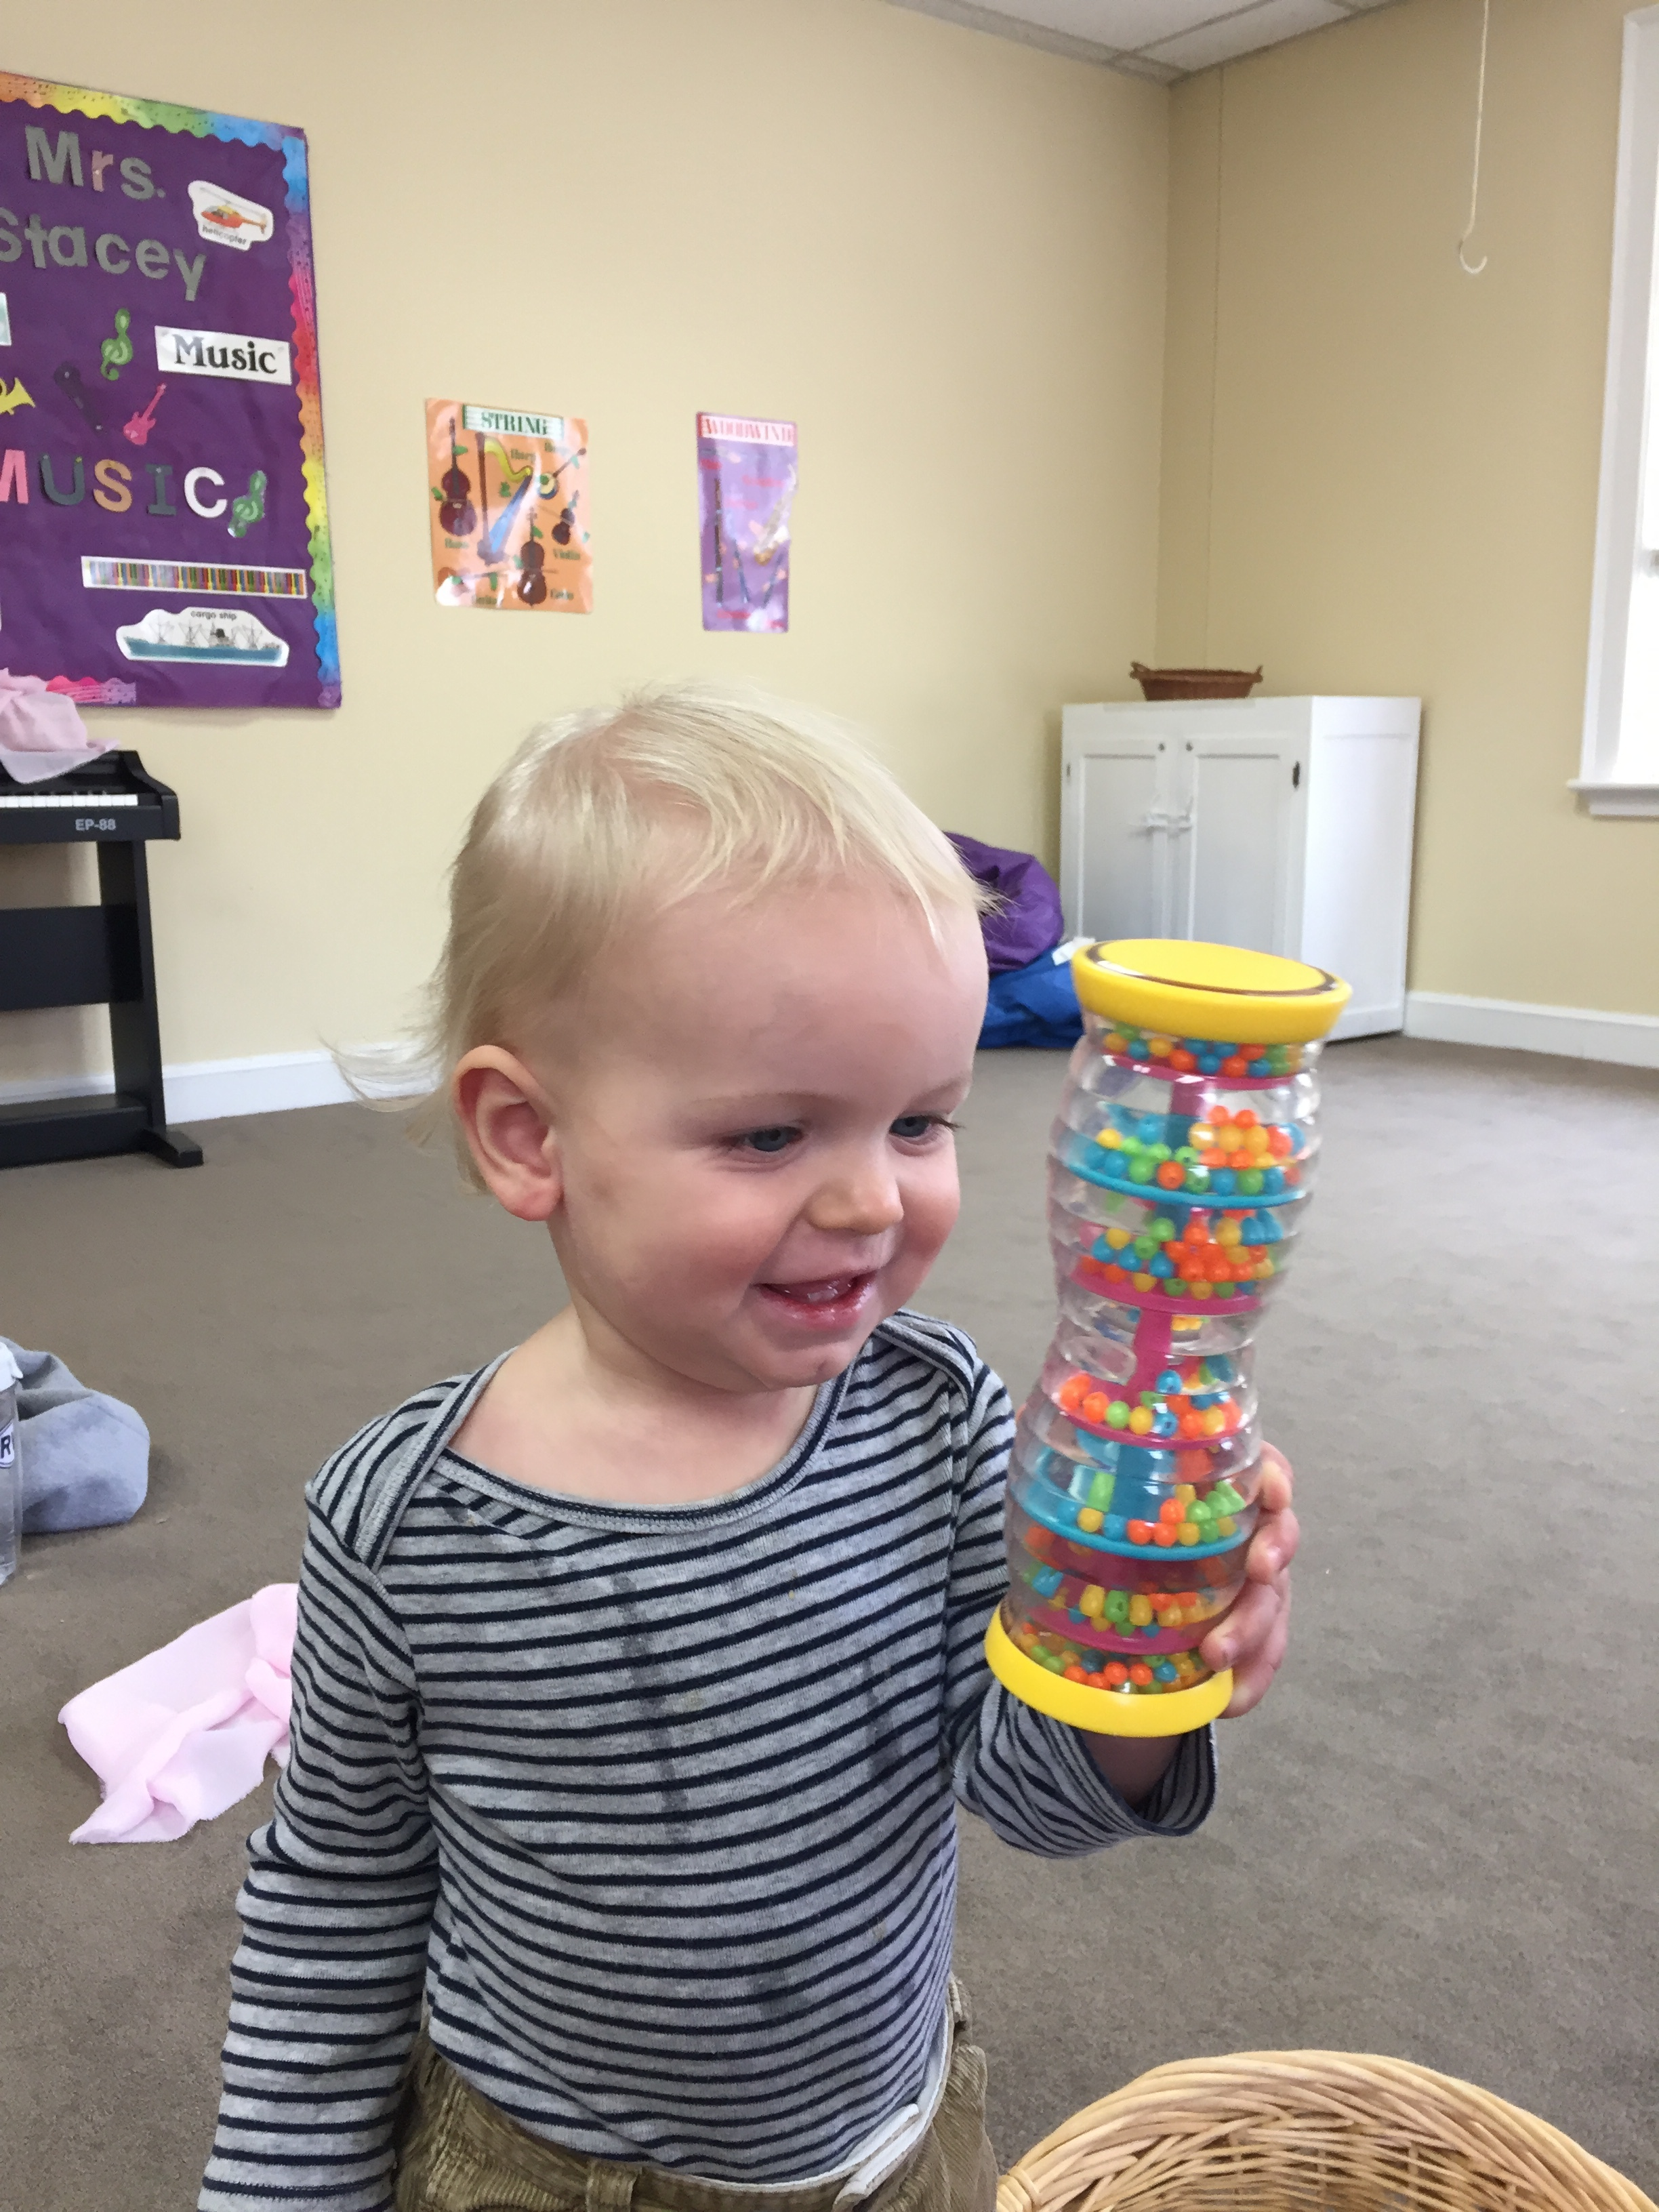 Price is enjoying the shaker and watching where the shaker beads are going.